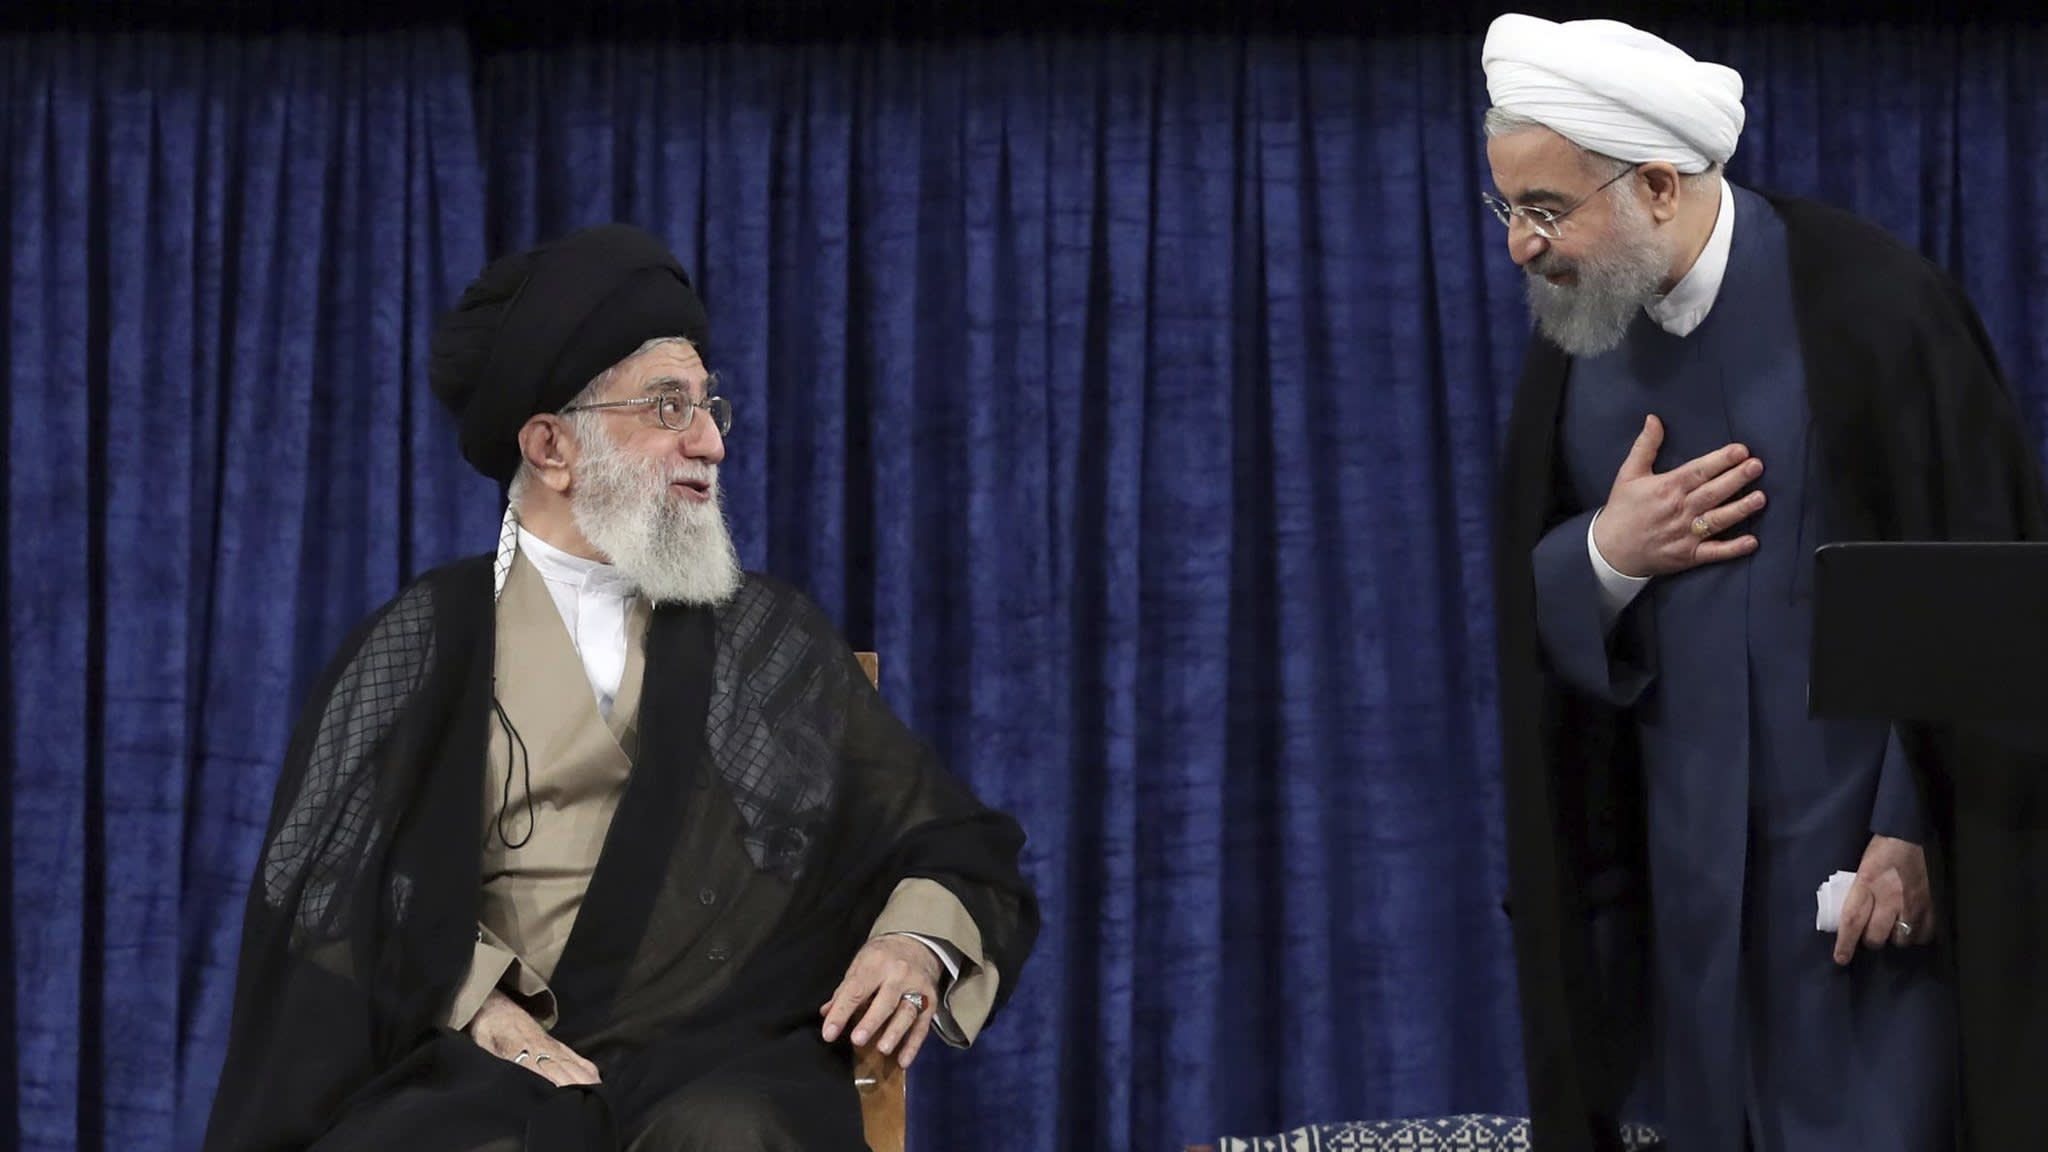 Iranians fear US confrontation as war of words escalates